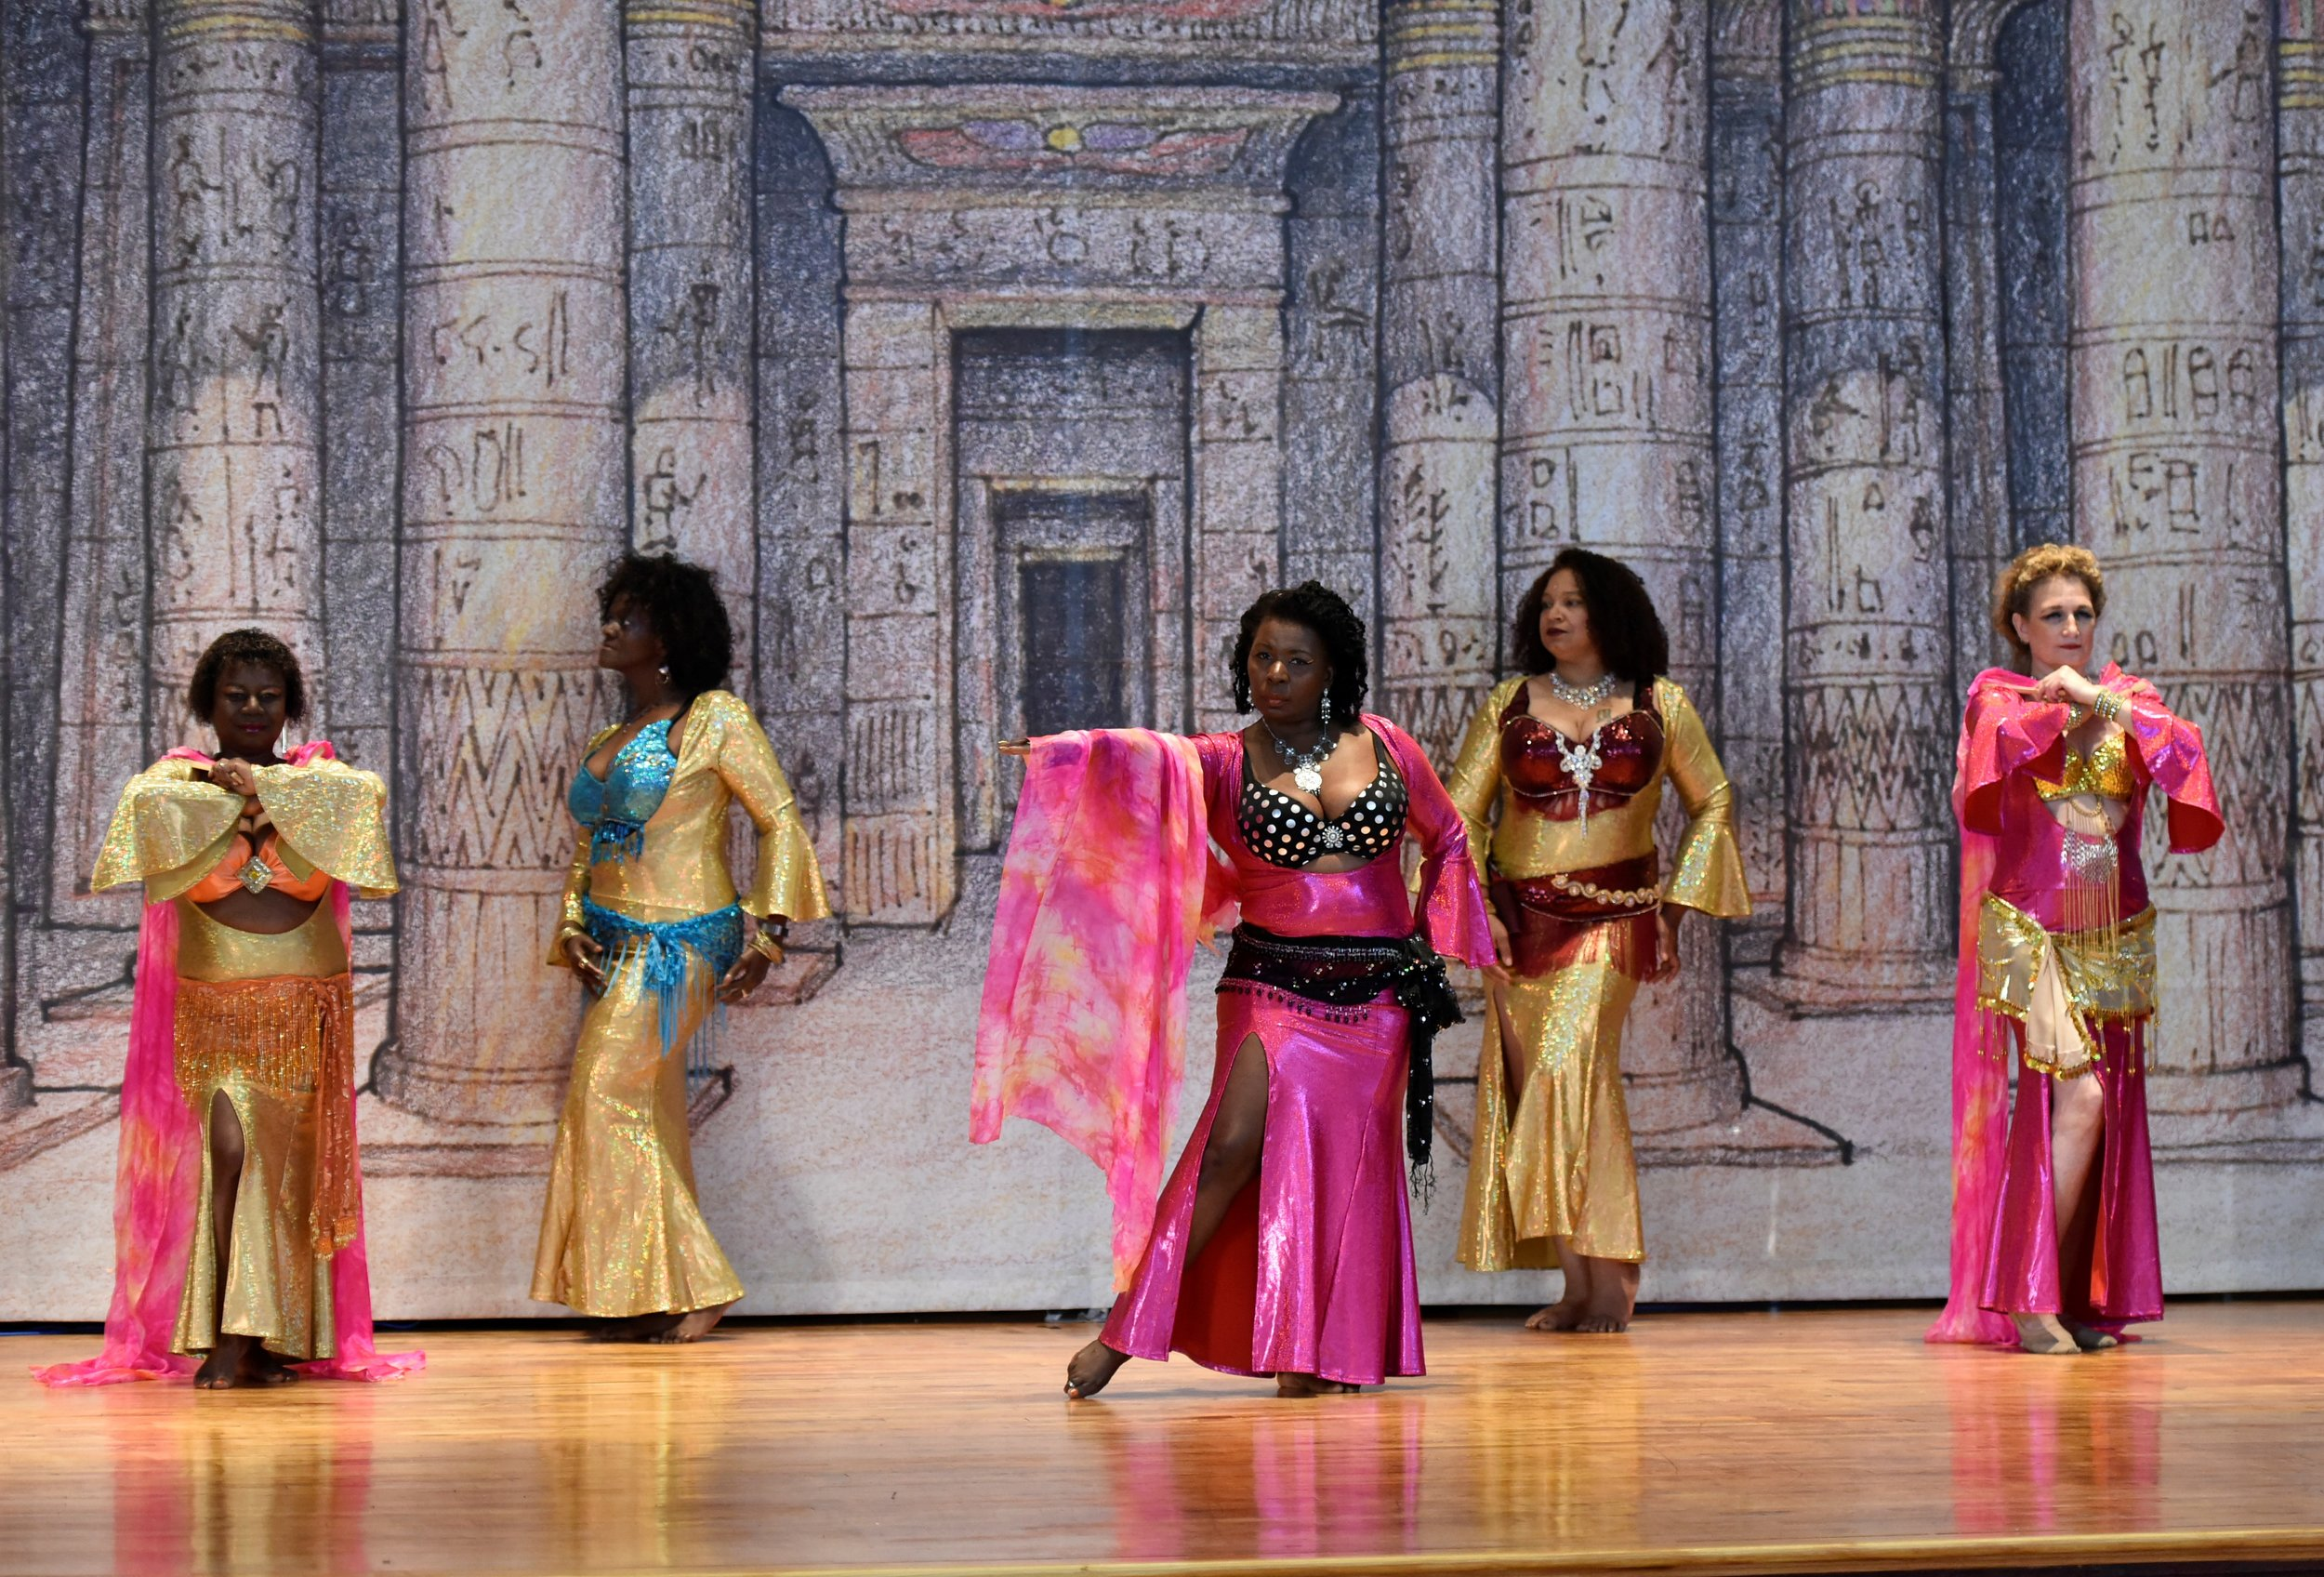 8:30-9PM  Egyptian Belly Dance w/ Audie & the Daughters of Het Haru